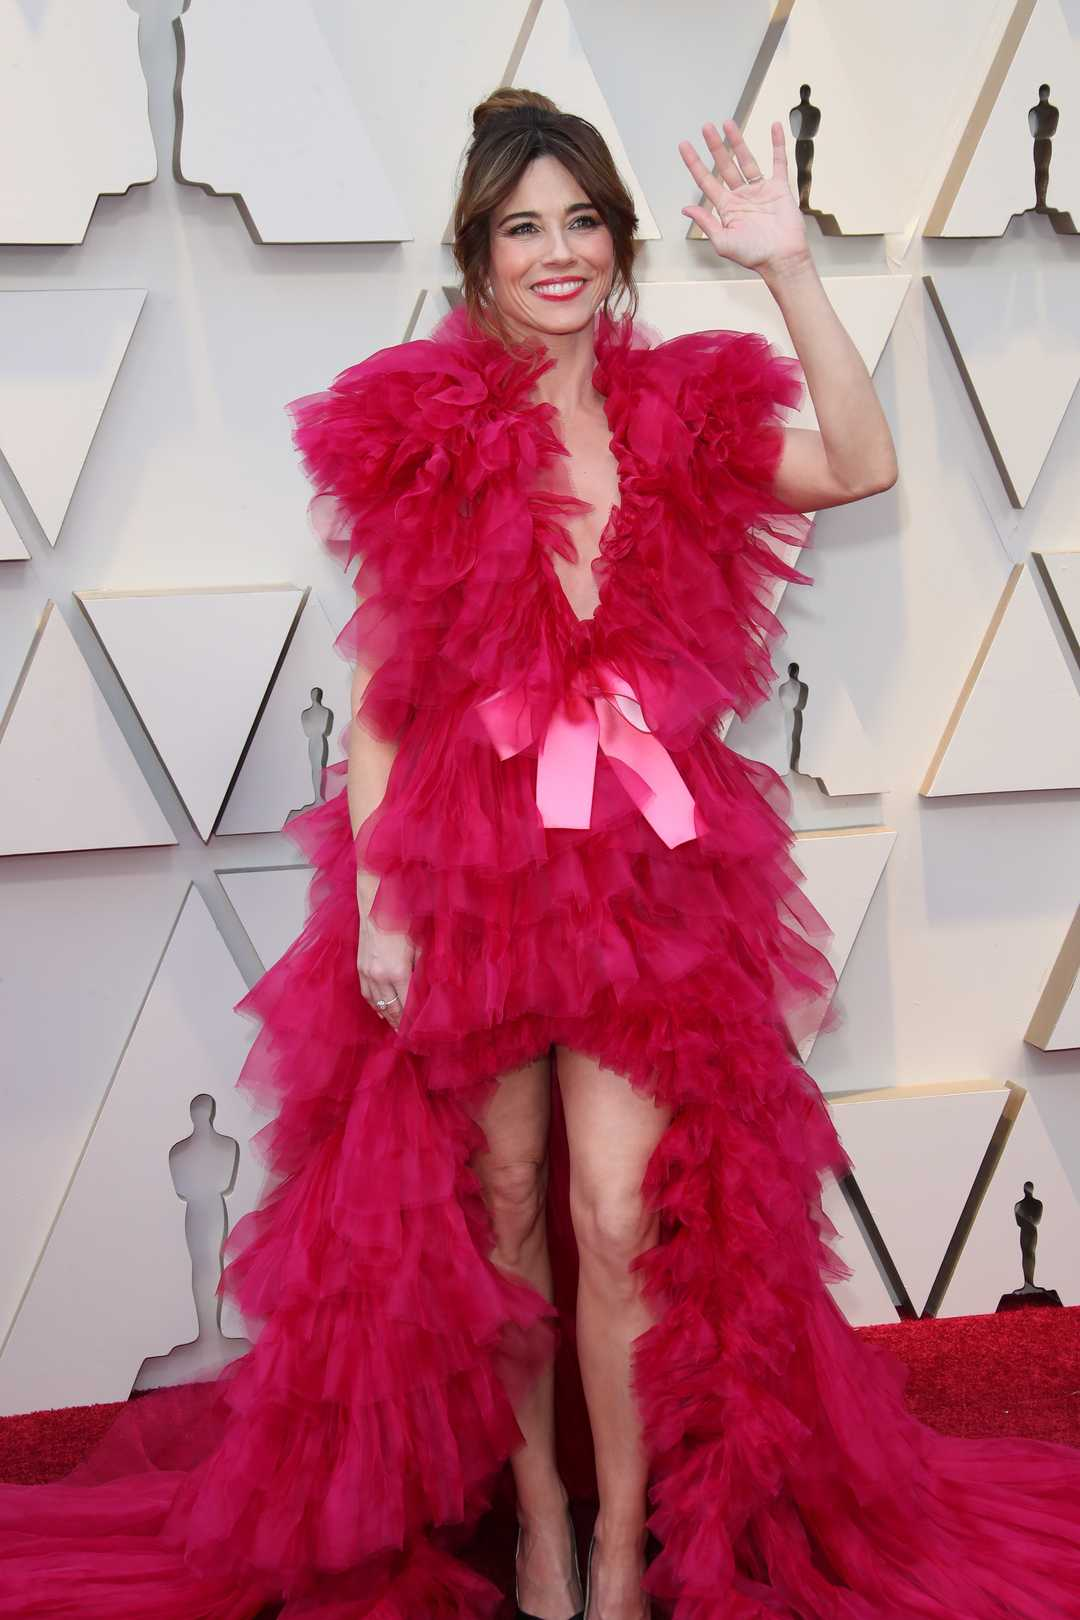 d5234f1f-633b-471f-a362-54dbf0d6e96b-xxx_entertainment__91st_academy_awards_red_carpet_20190224_usa__1